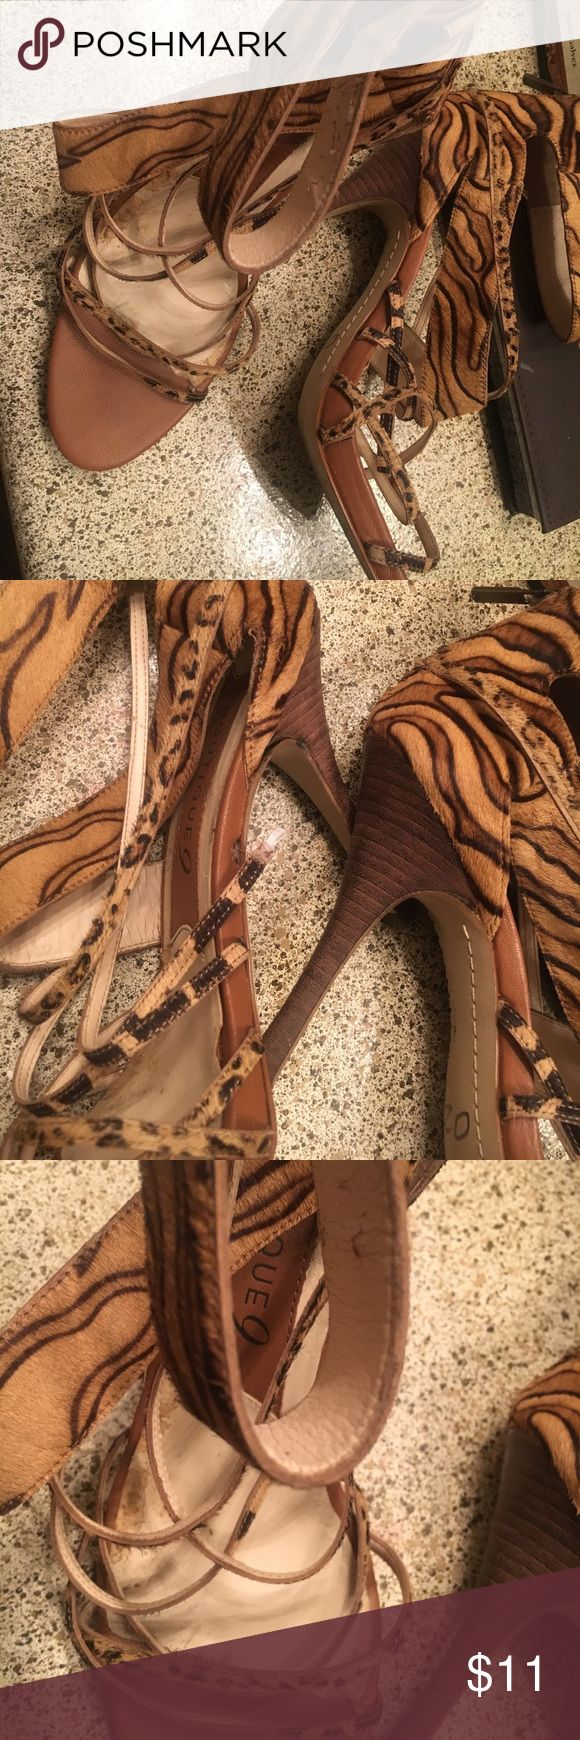 Boutique 9 Real Pony Skin Animal Print Ankle Wrap Sexy love these bought them at an awesome price  at a sample sale in NYC ❤️ one small strap came out of side shown in pic can be glued very inexpensive I gained weight lol 😂 Boutique 9 Shoes Heels